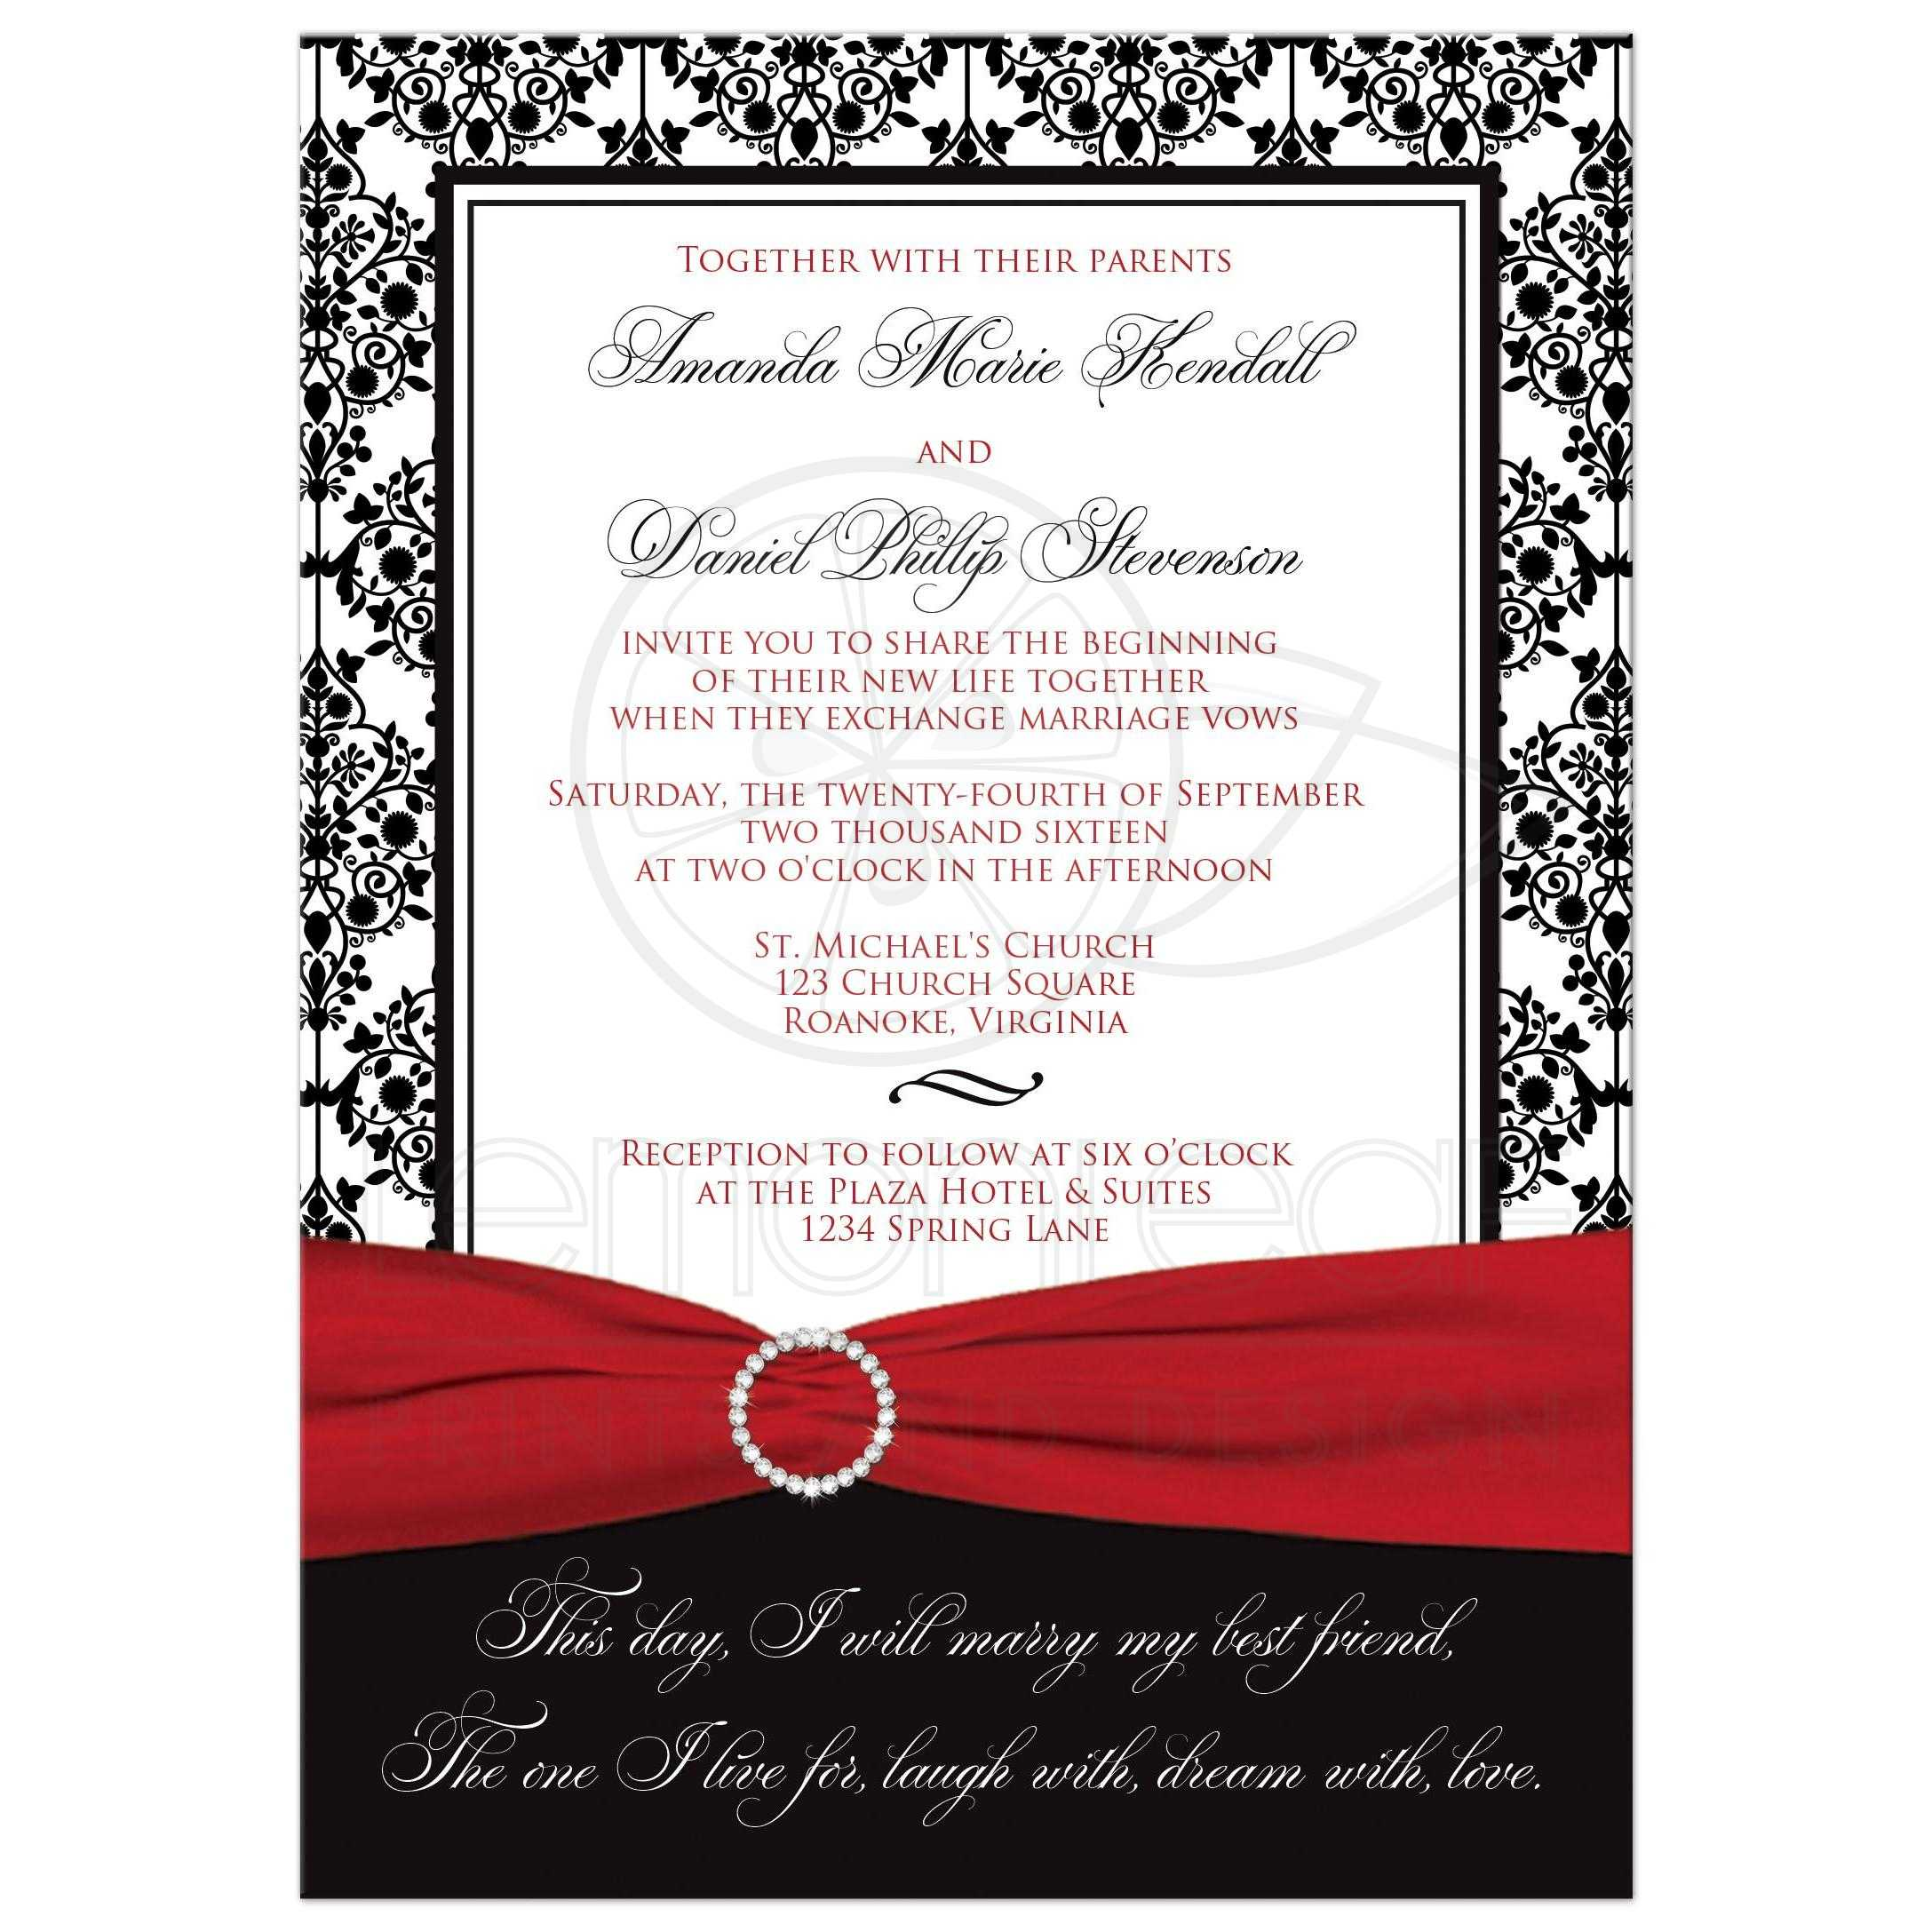 Wedding invitation black white damask printed red ribbon best wedding invitation in black and white damask with red ribbon and diamond buckle brooch filmwisefo